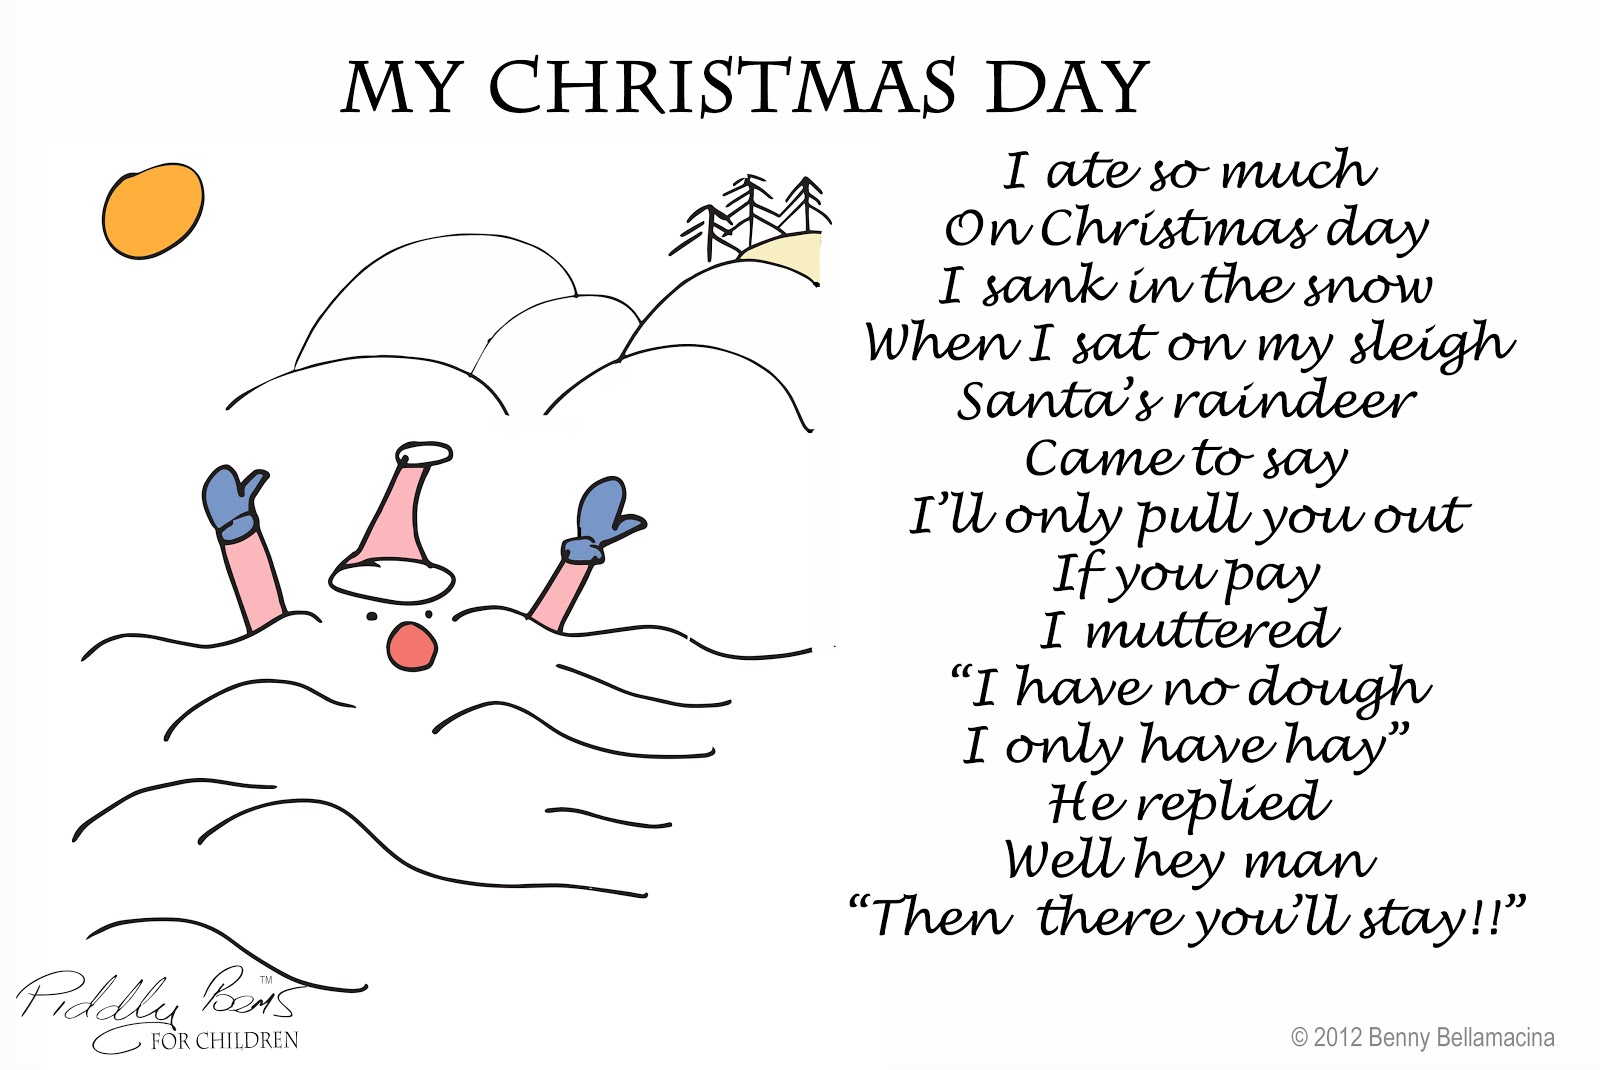 Ben noto Piddly poems: My Christmas day CD76